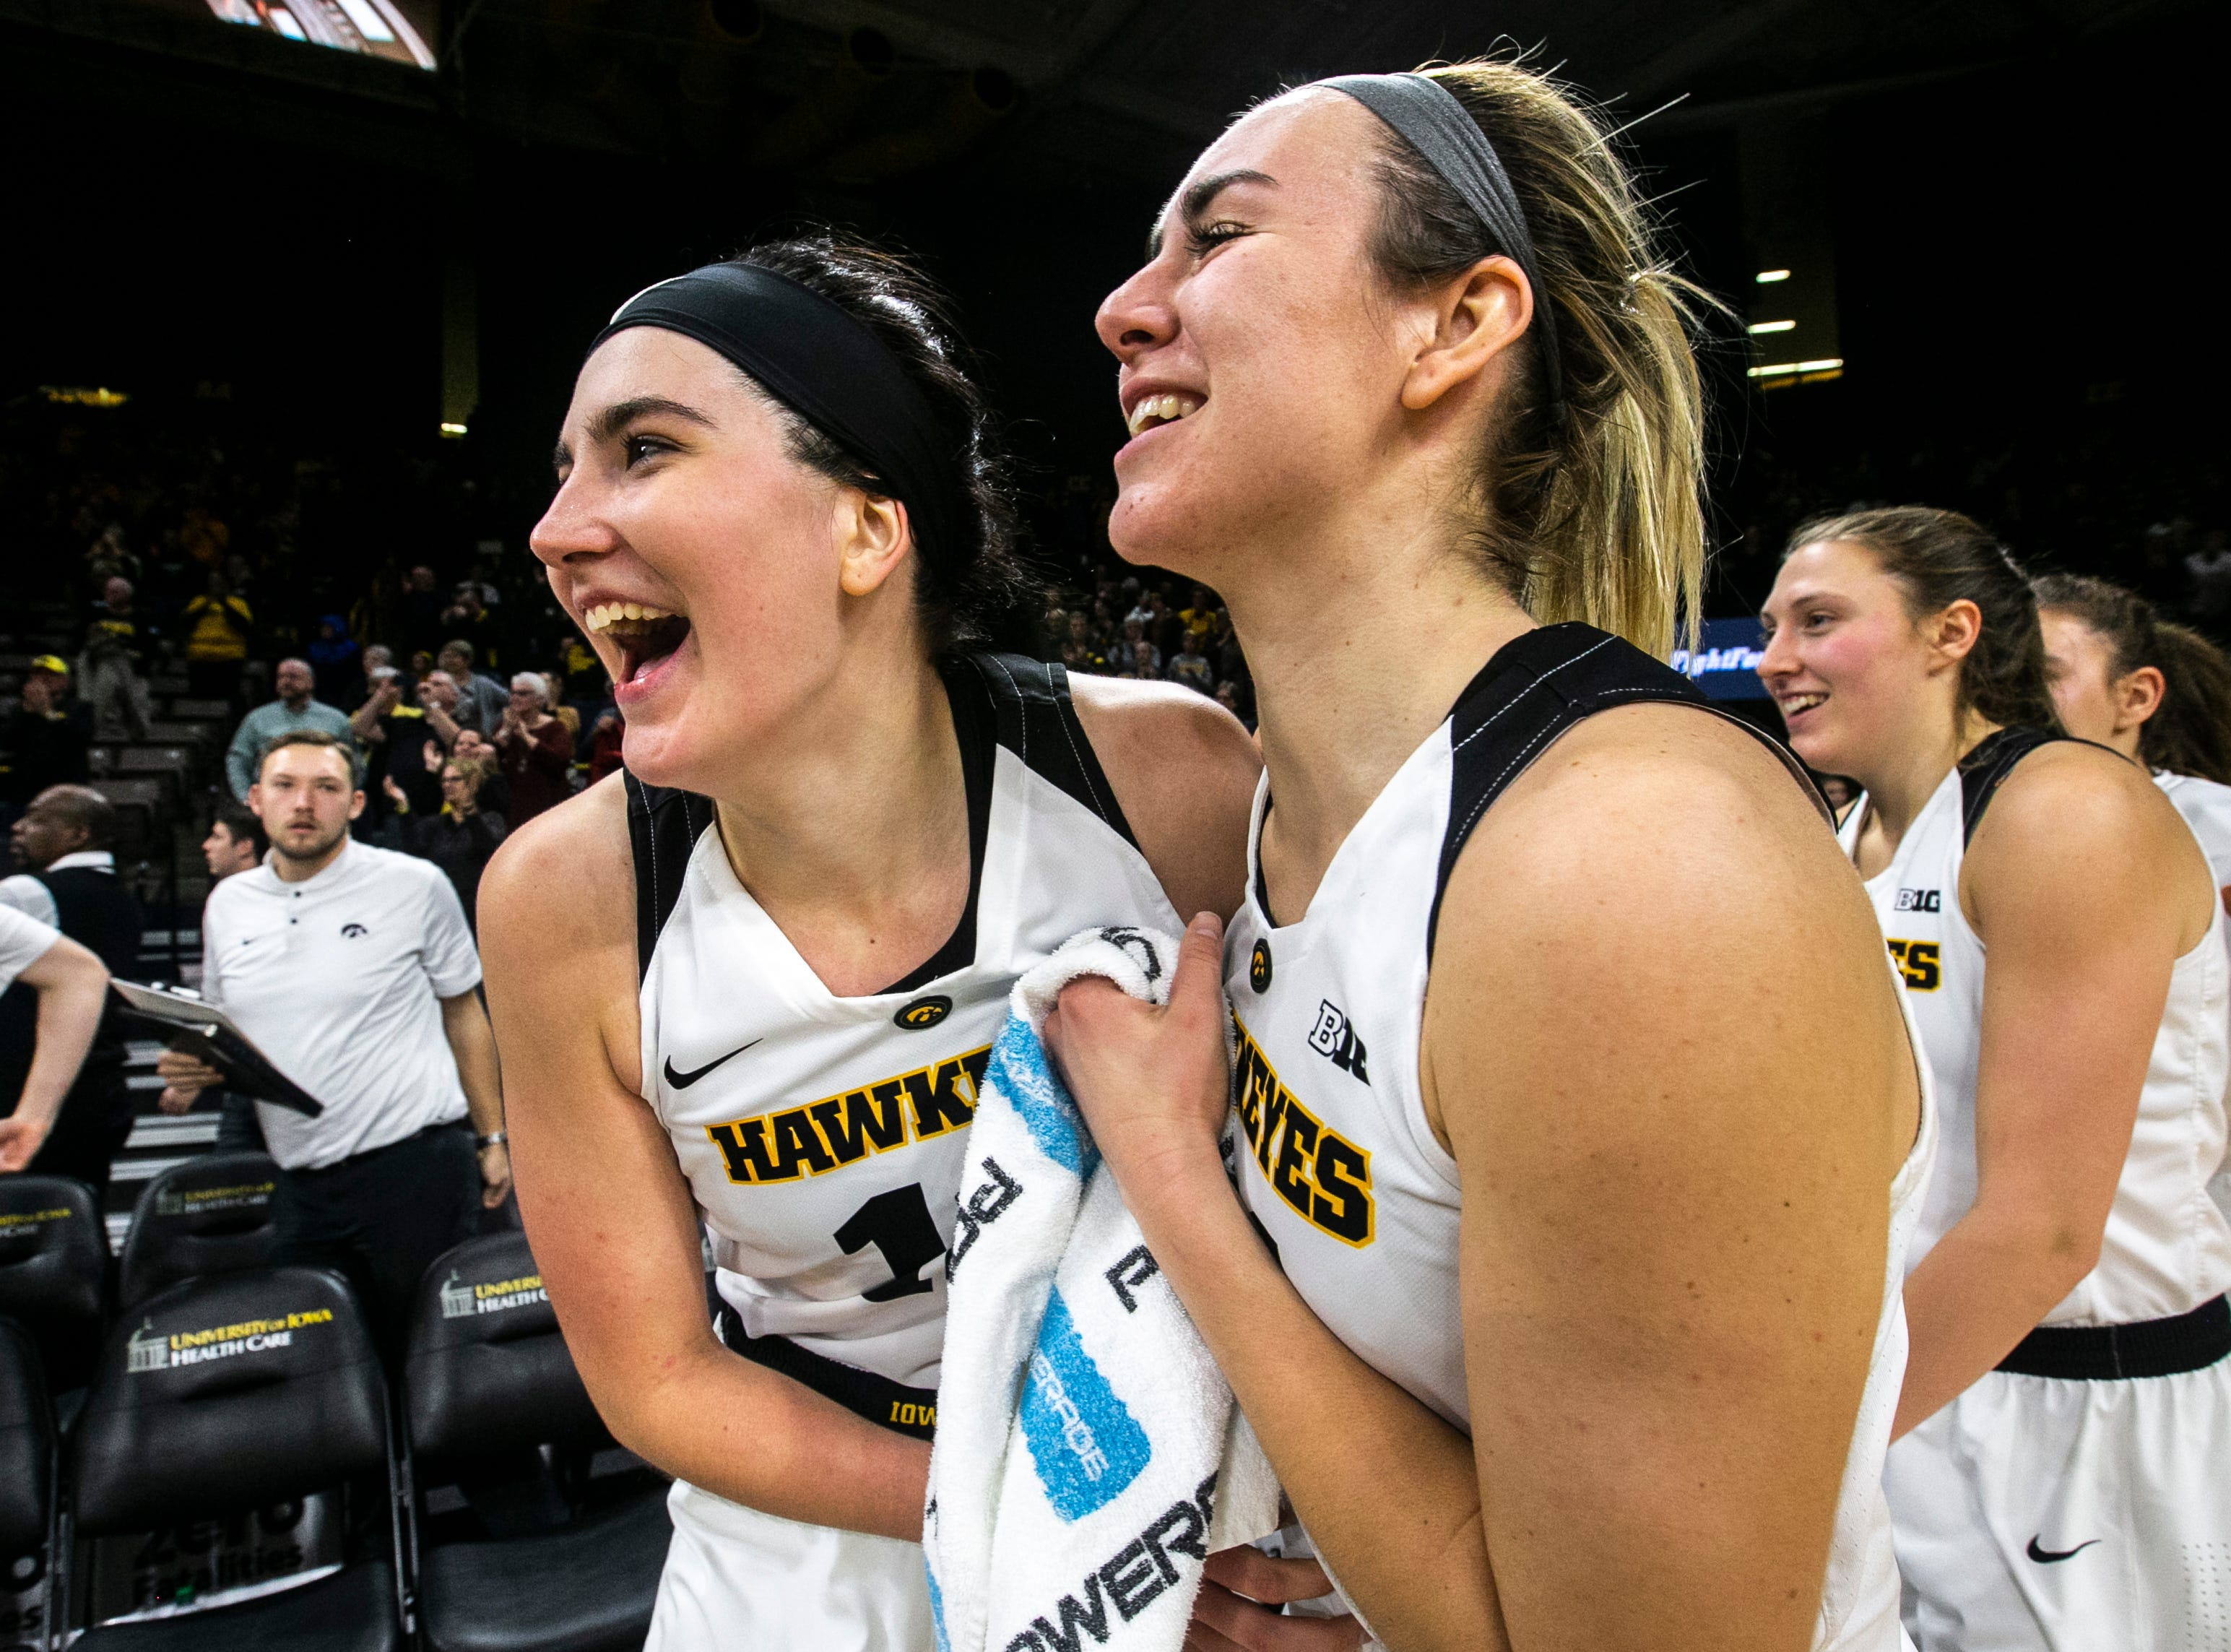 Iowa forward Megan Gustafson, left, embraces Iowa forward Hannah Stewart after a NCAA Big Ten Conference women's basketball game on Wednesday, Jan. 23, 2019, at Carver-Hawkeye Arena in Iowa City, Iowa. The Hawkeyes defeated Rutgers' Scarlet Knights, 72-66.